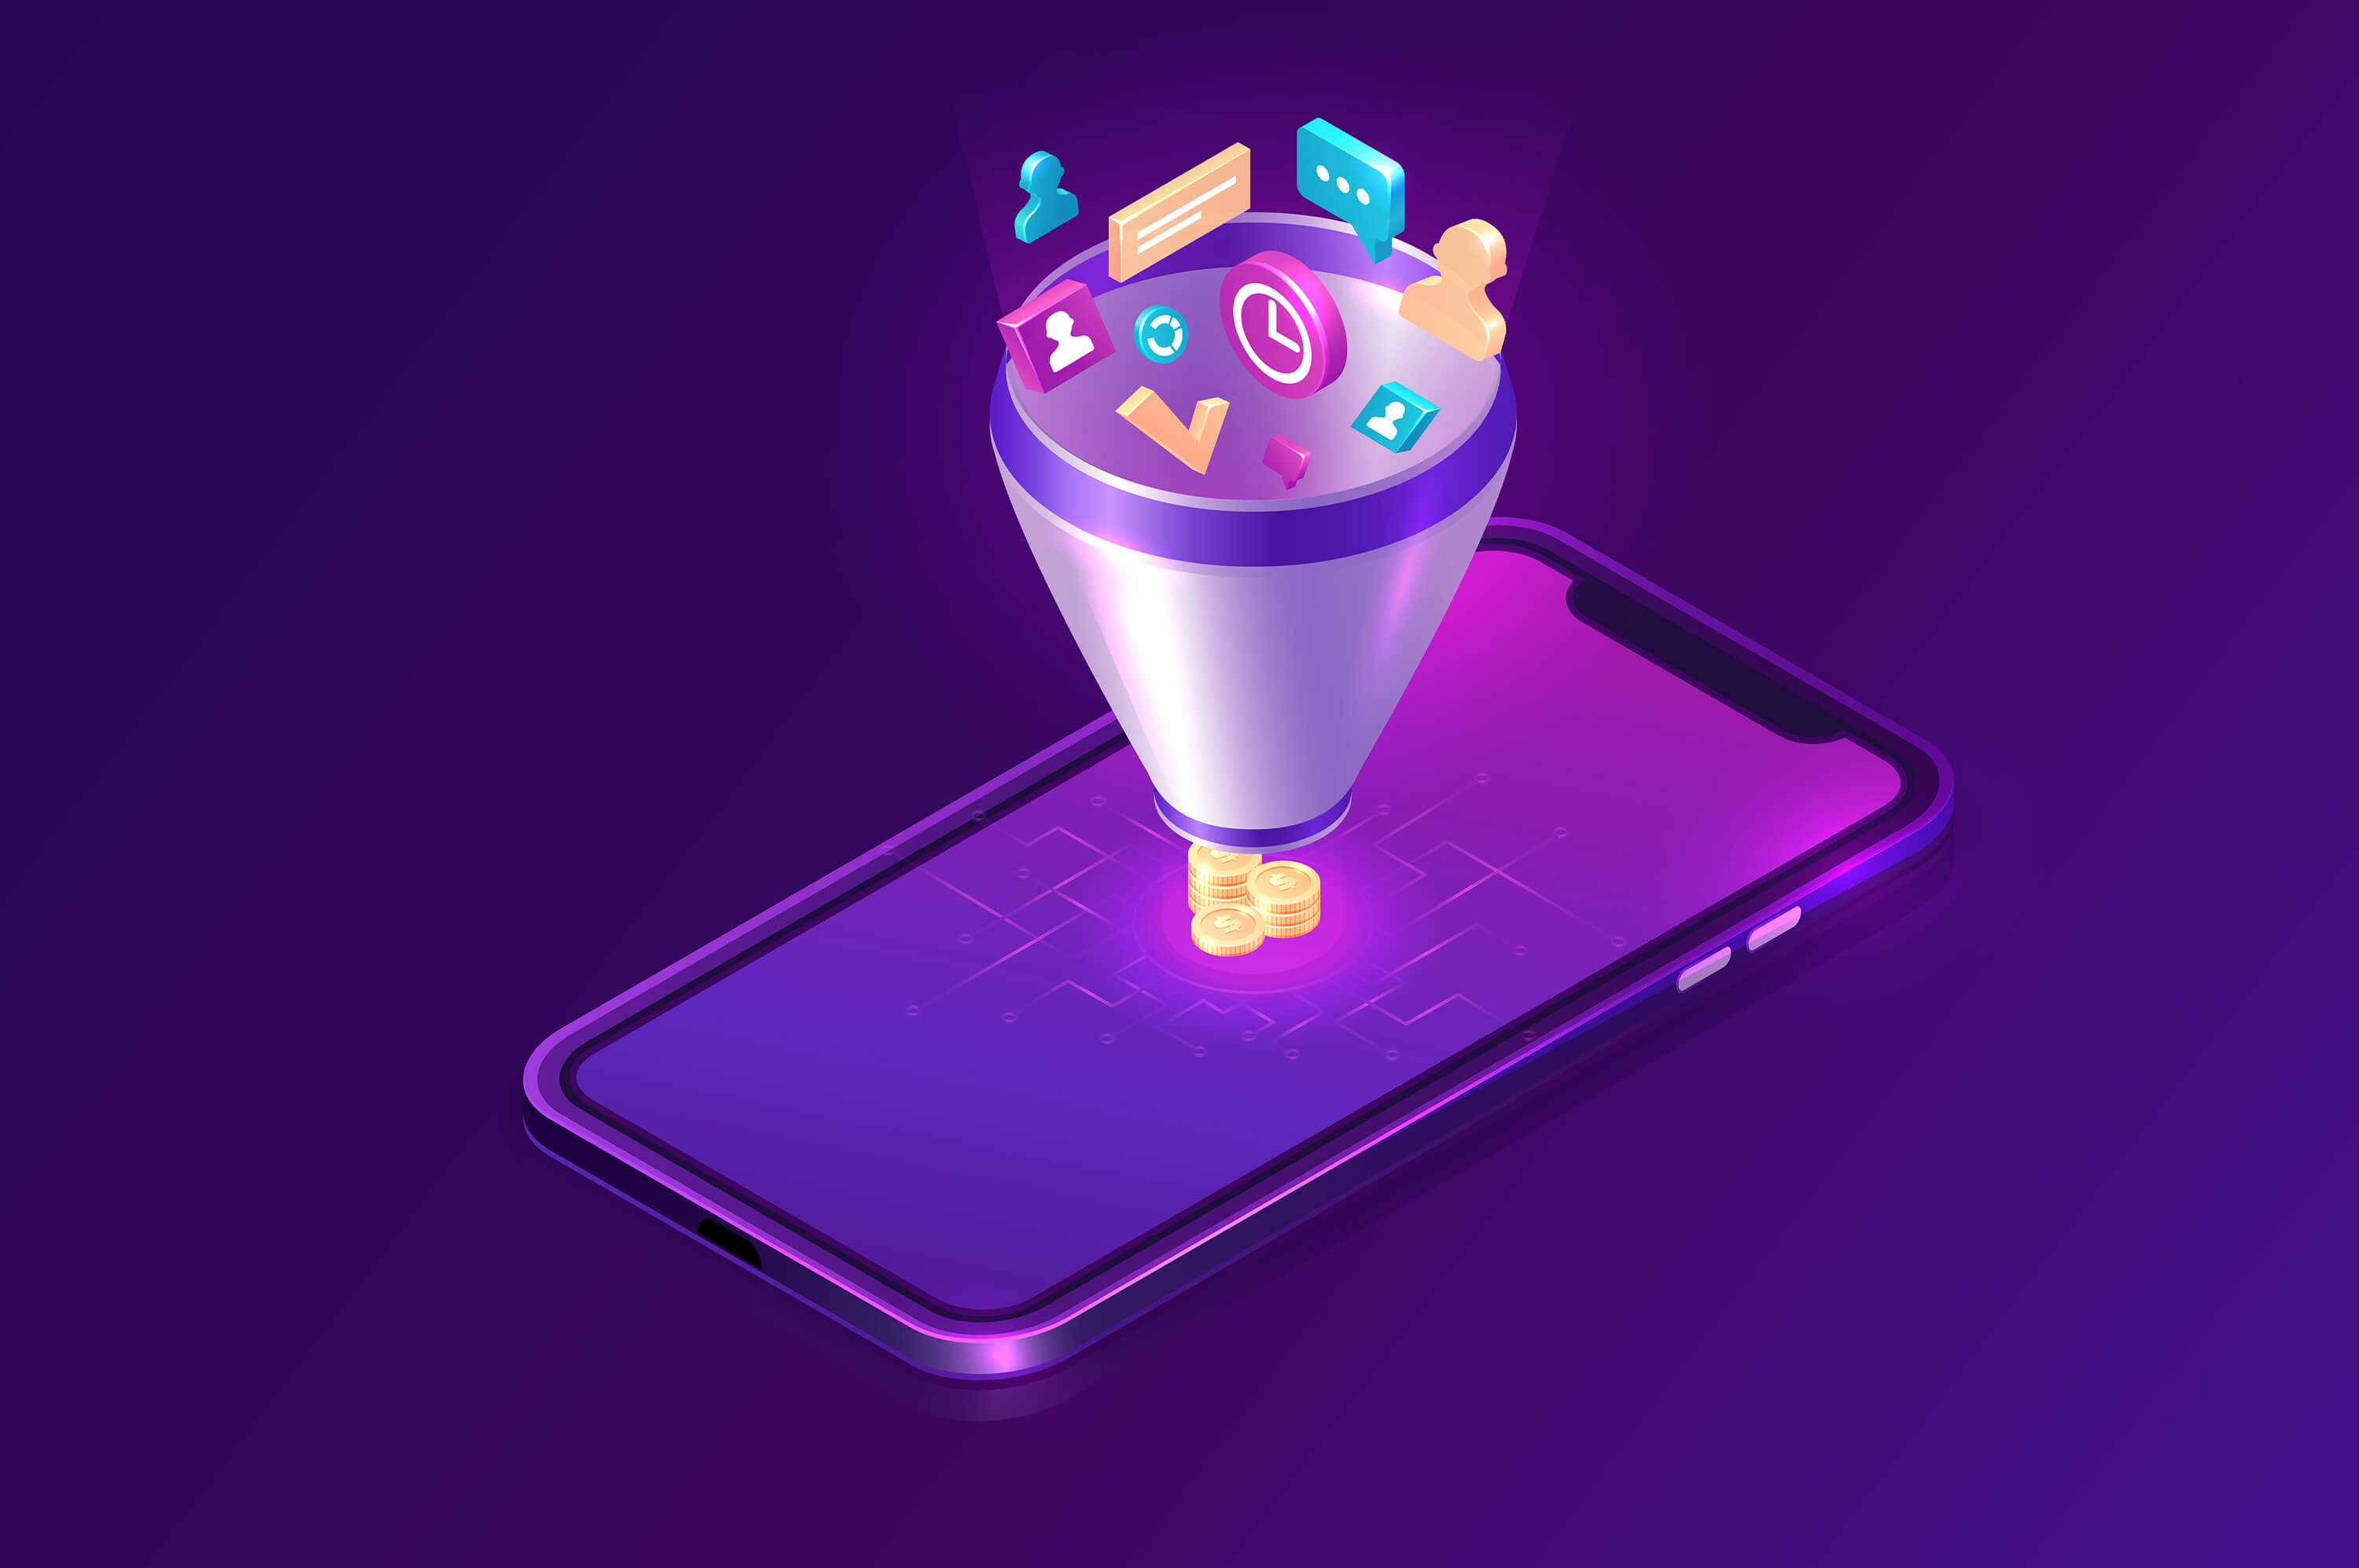 a smartphone on a violet background